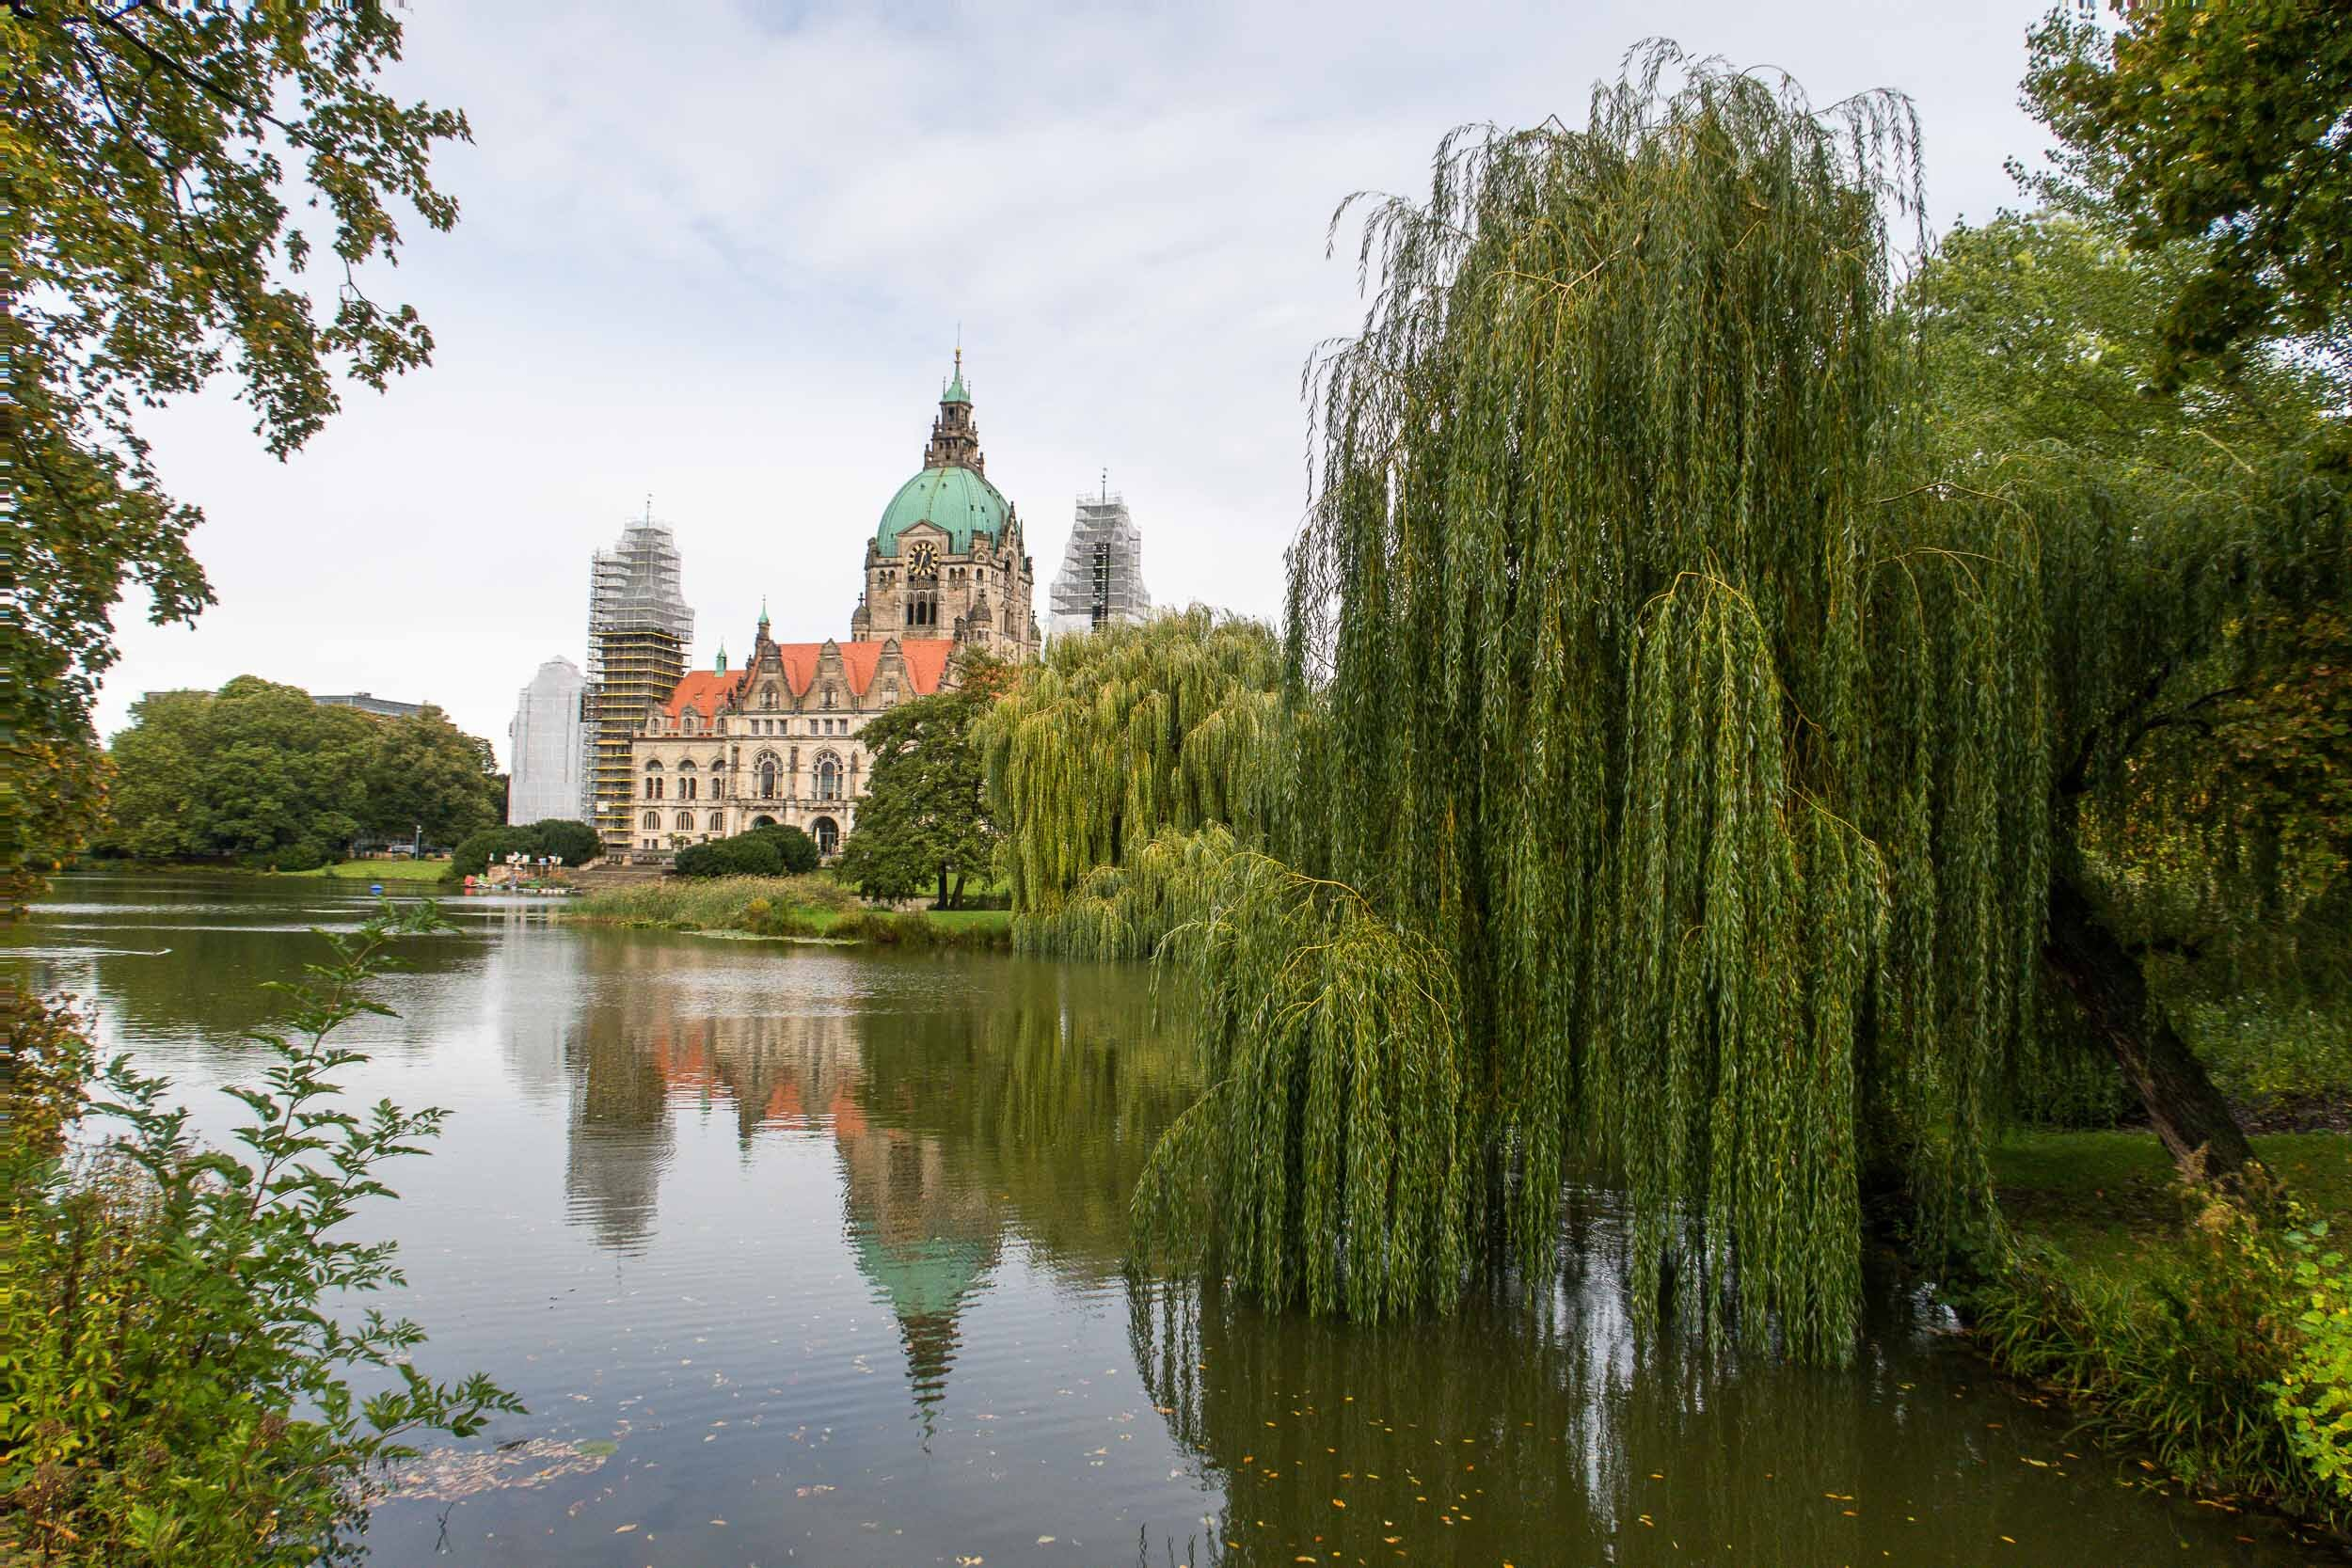 Things to do in Hanover - The Most Underrated City in Germany